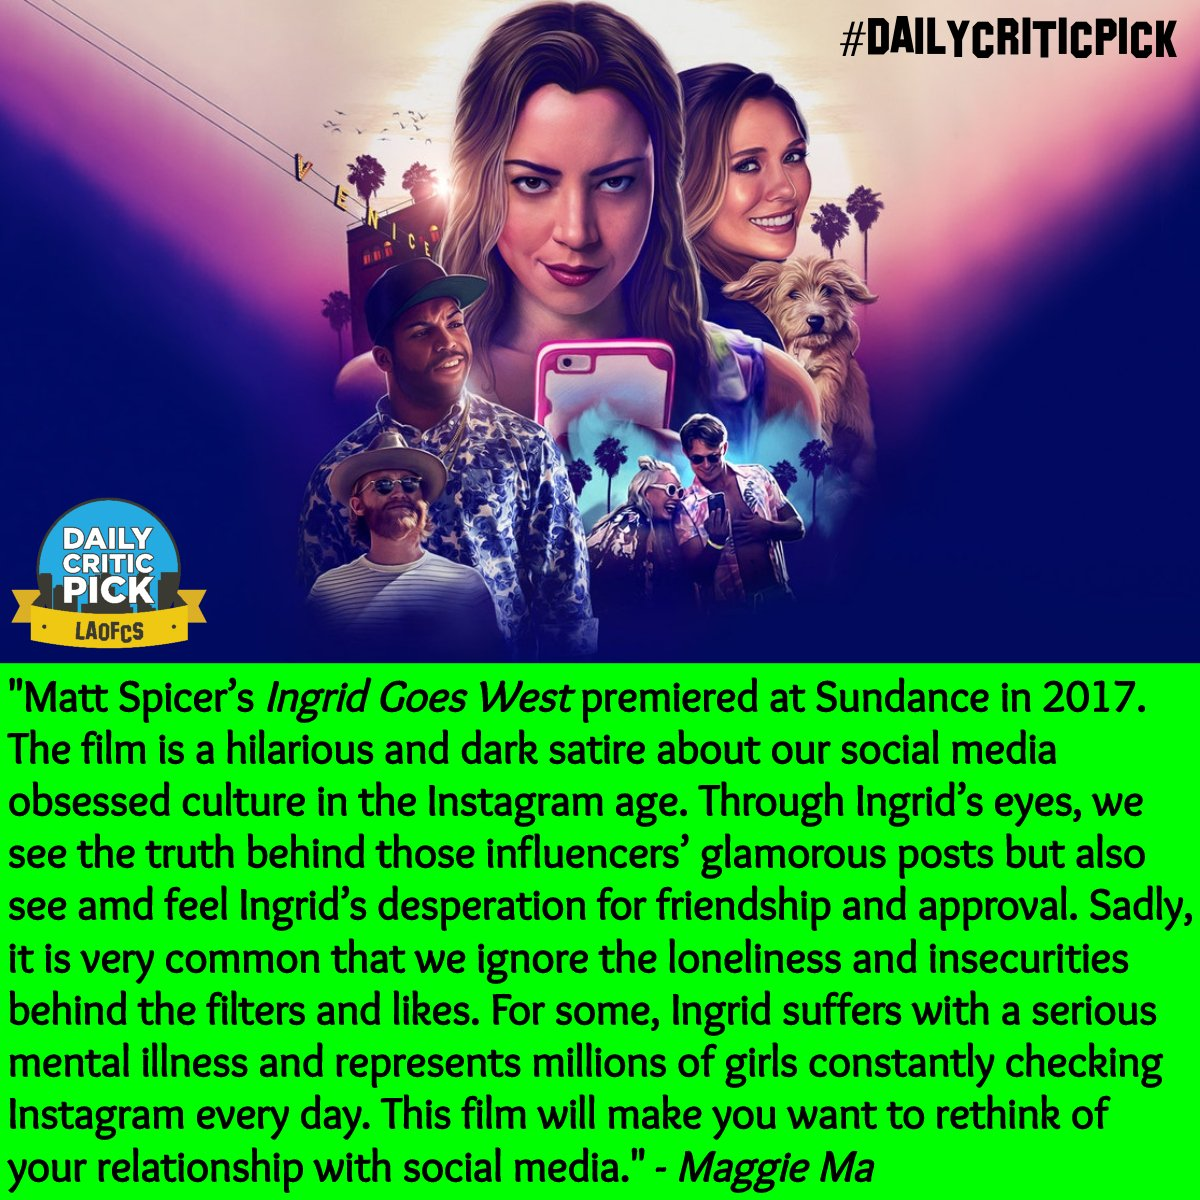 Hollywood Critics Association On Twitter For Day Twelve Of Our Sundance Film Festival Inspired Daily Critic Pick Maggie Ma Maggiema La Has Selected Matt Spicer S Ingrid Goes West Starring Aubrey Plaza And Elizabeth